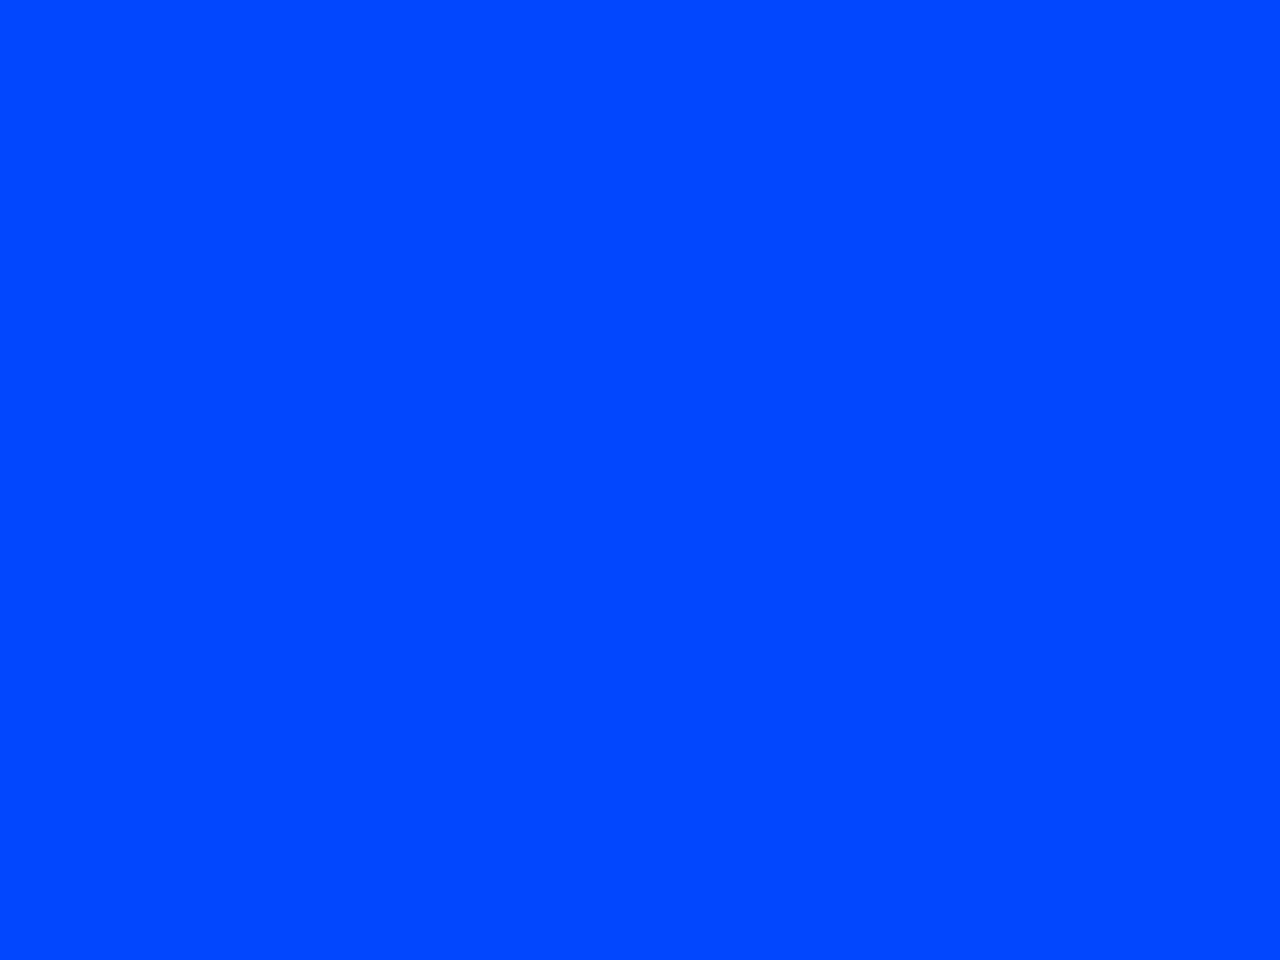 1280x960 Blue RYB Solid Color Background